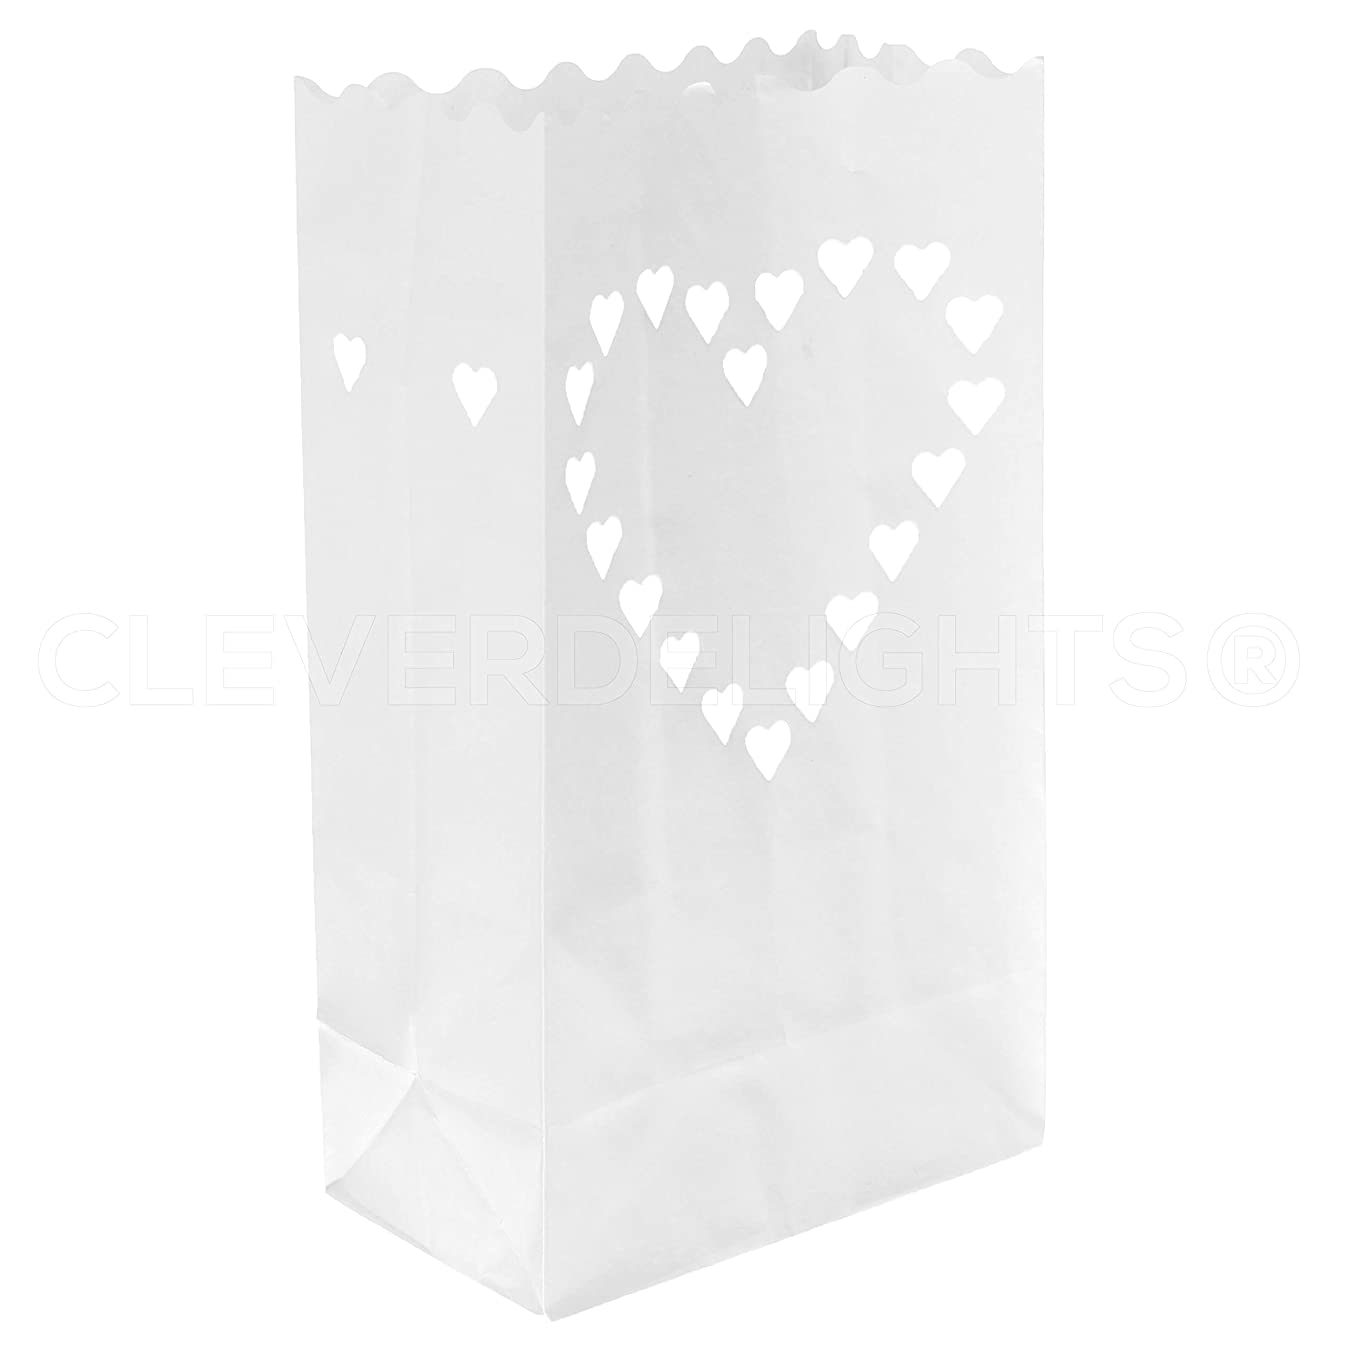 CleverDelights White Luminary Bags - 20 Count - Big Heart Design - Flame Resistant Paper - Wedding, Reception, Party and Event Decor - Luminaria Candle Bag